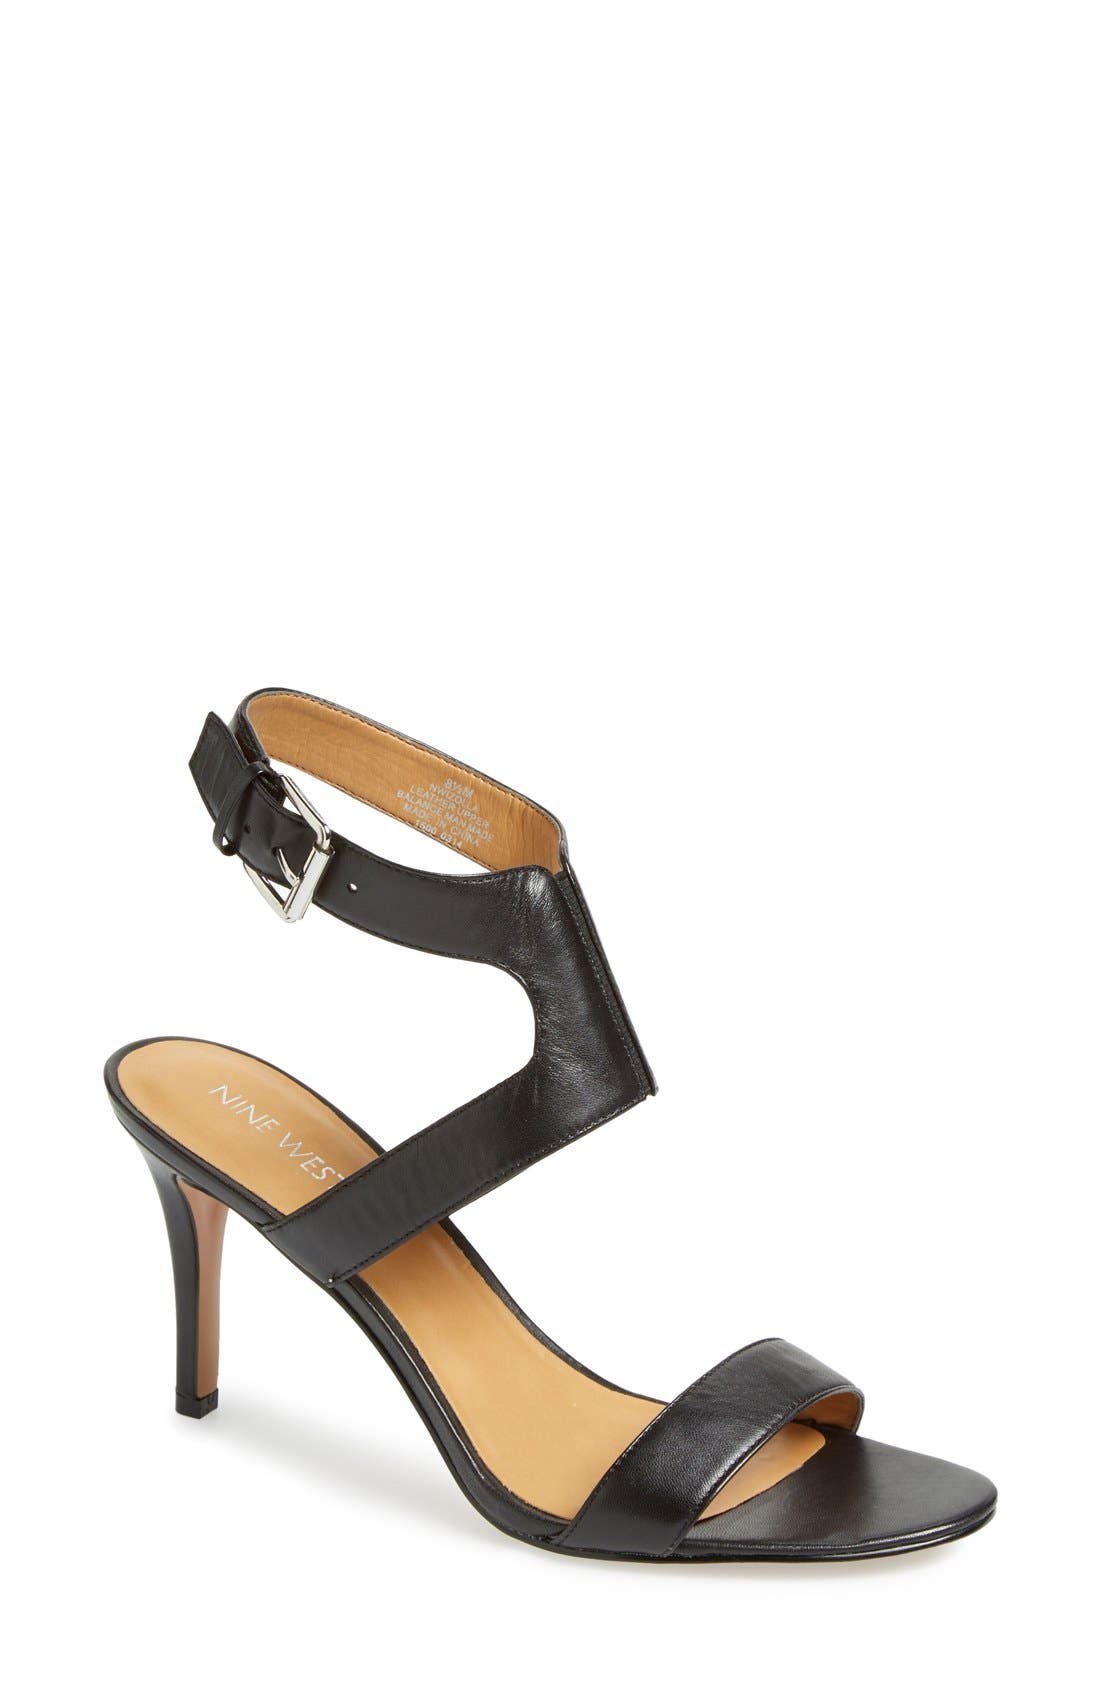 Main Image - Nine West 'Izolla' Sandal